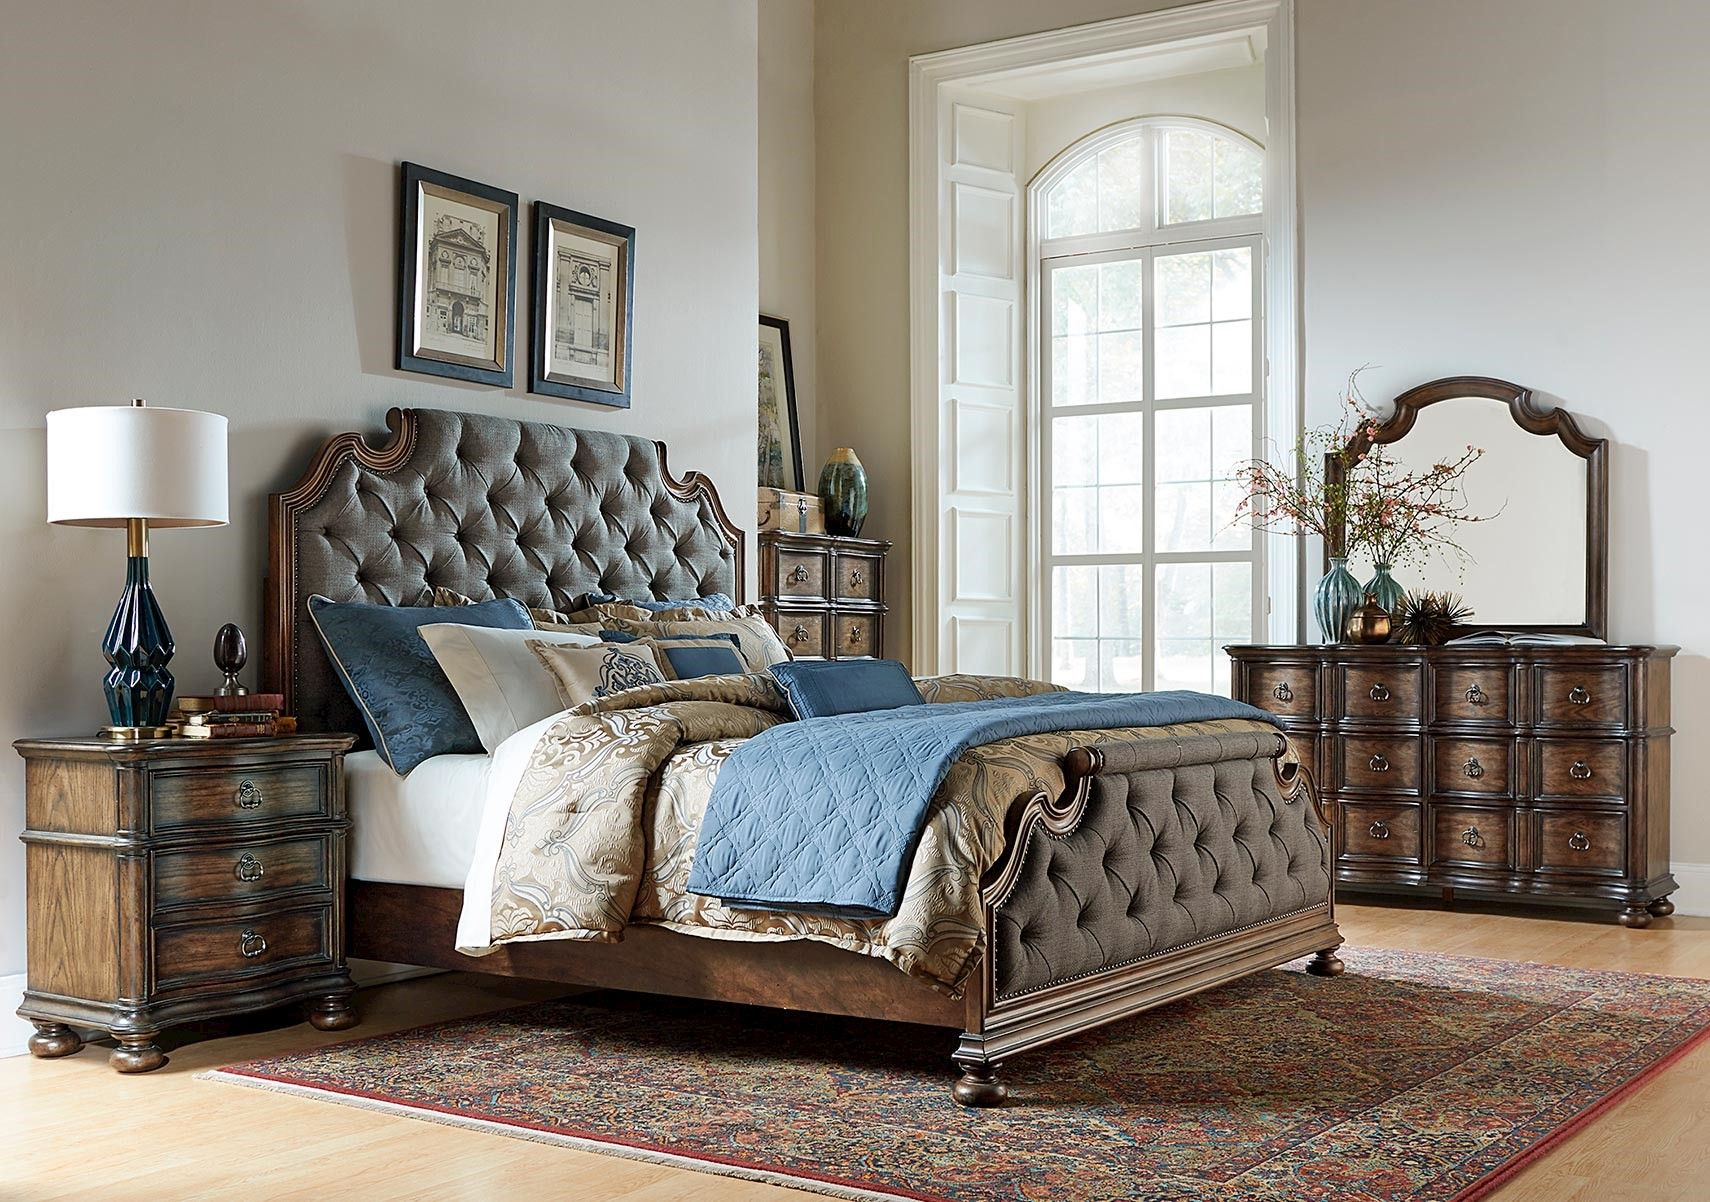 Lacks | Tuscany Valley 4-Pc Queen Bedroom Set | Transitional Style ...